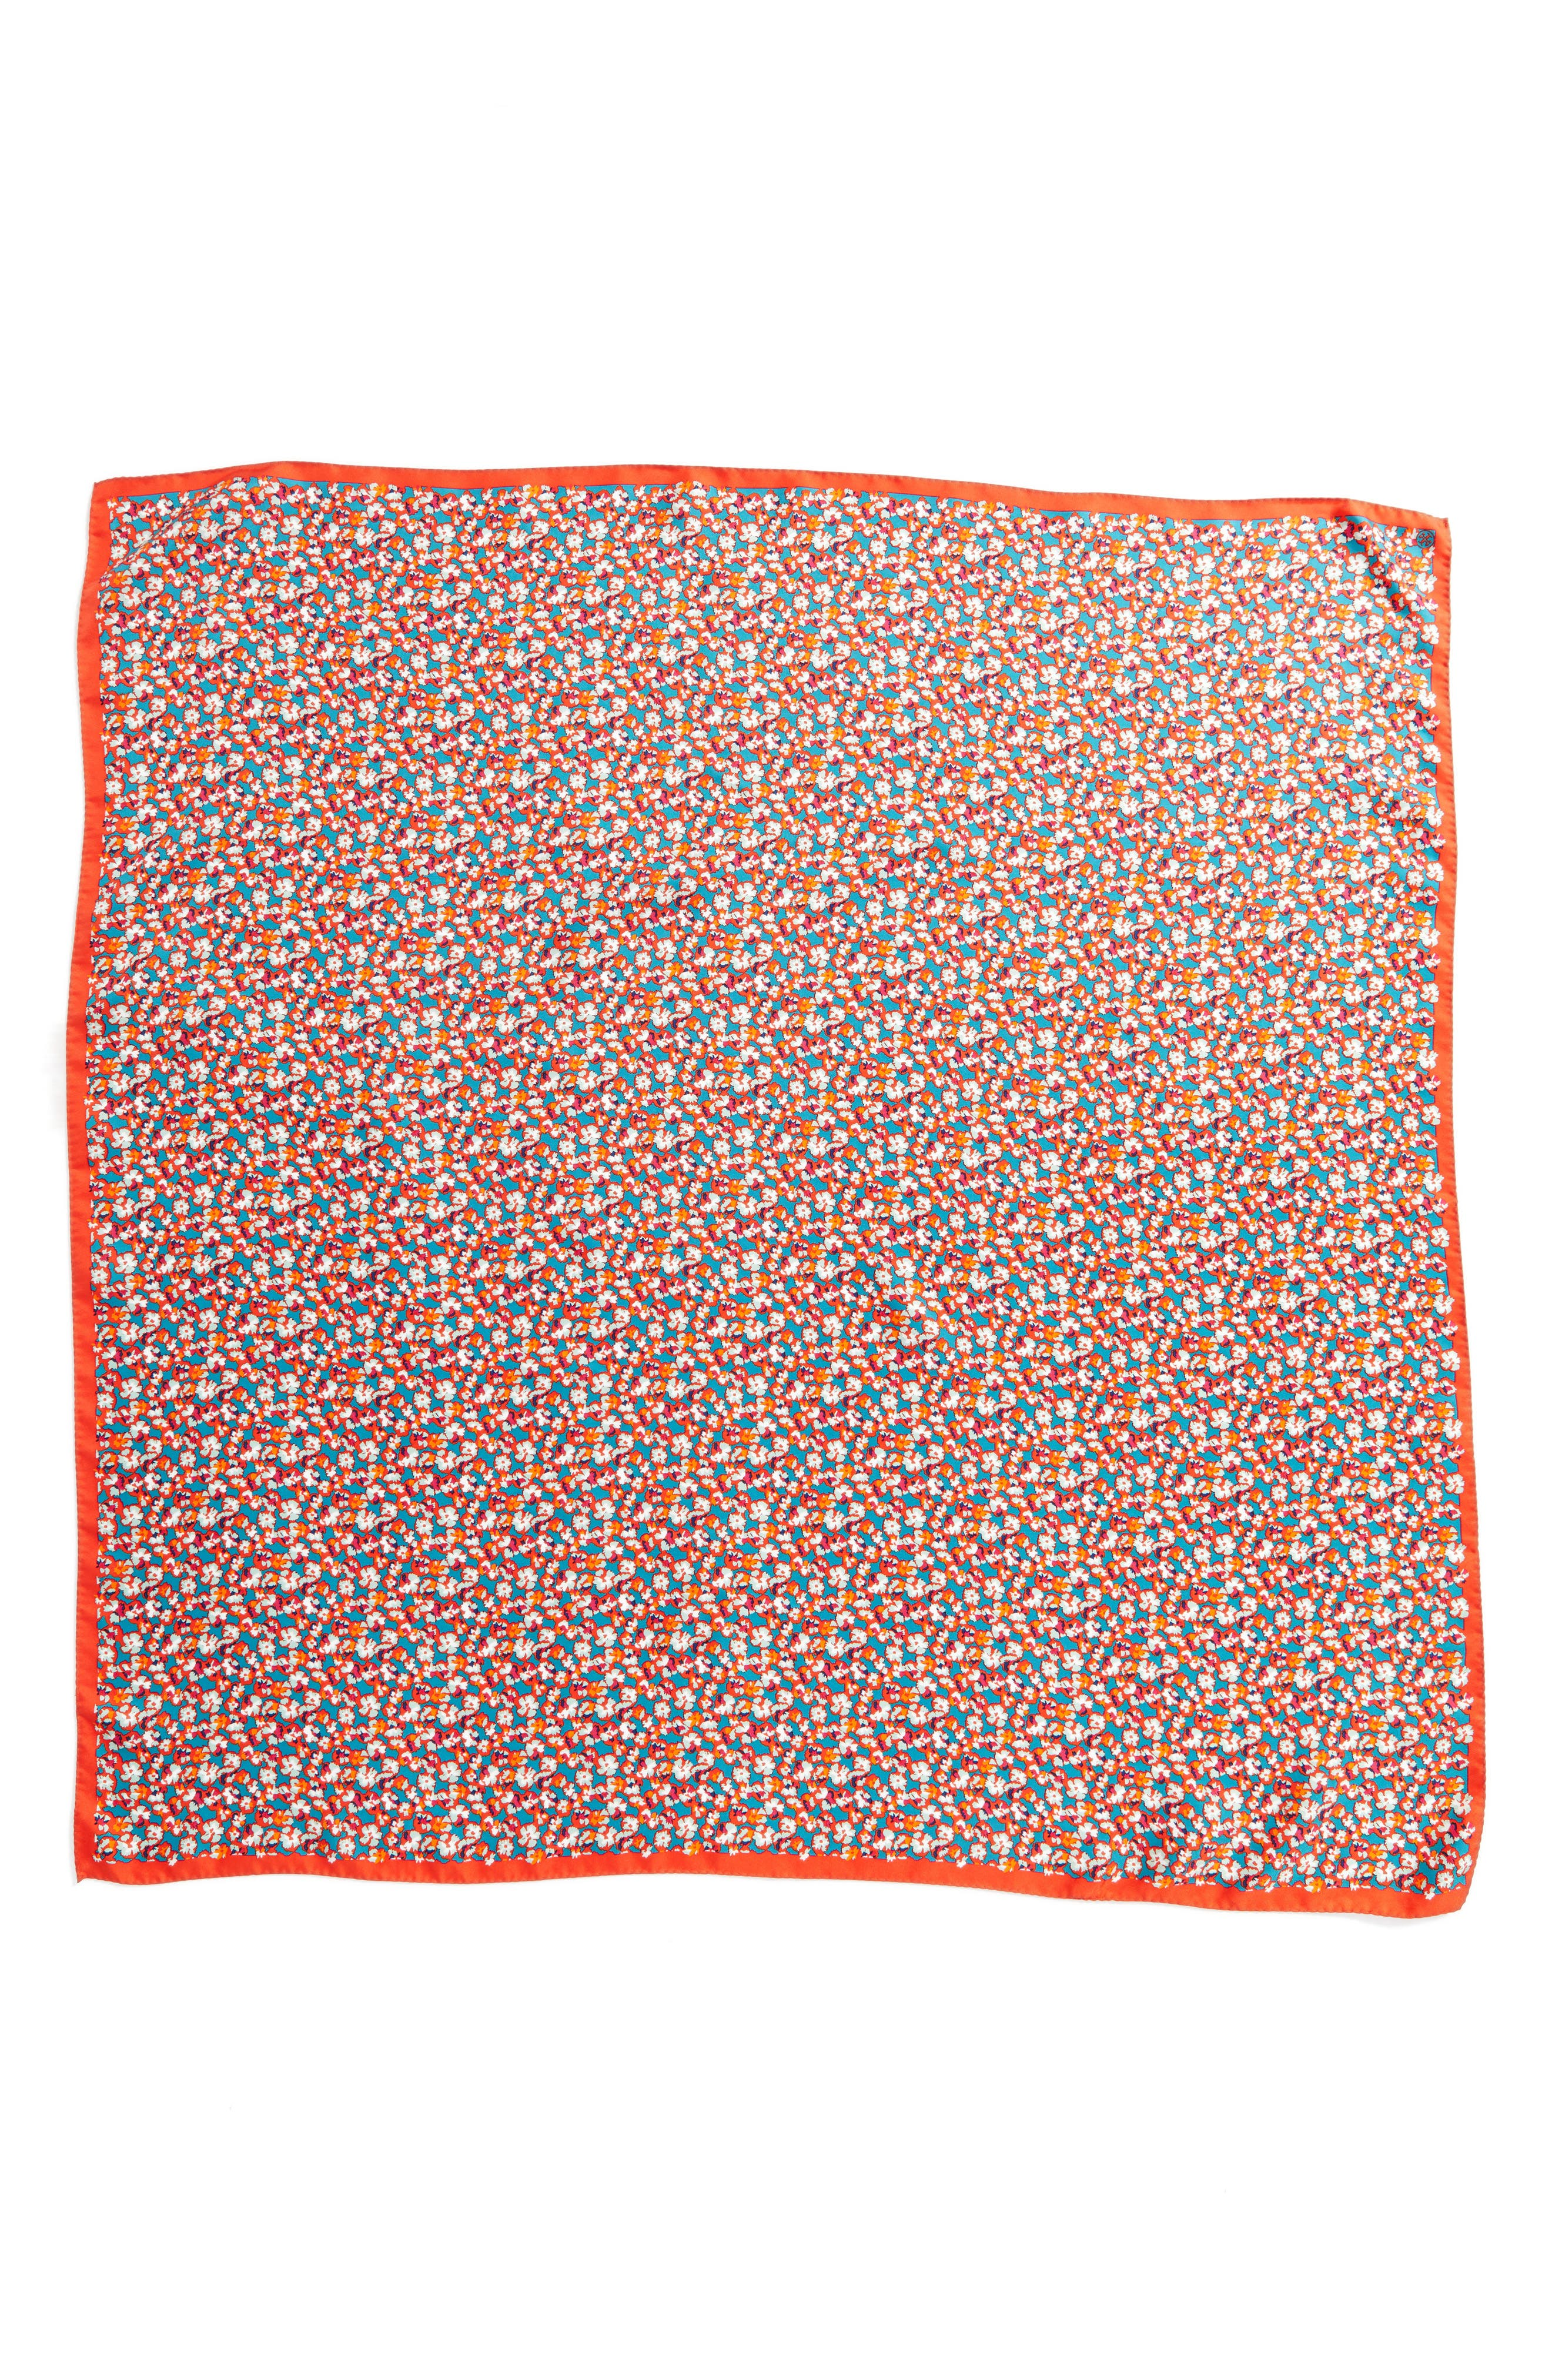 Carnation Silk Square Scarf,                             Alternate thumbnail 3, color,                             600